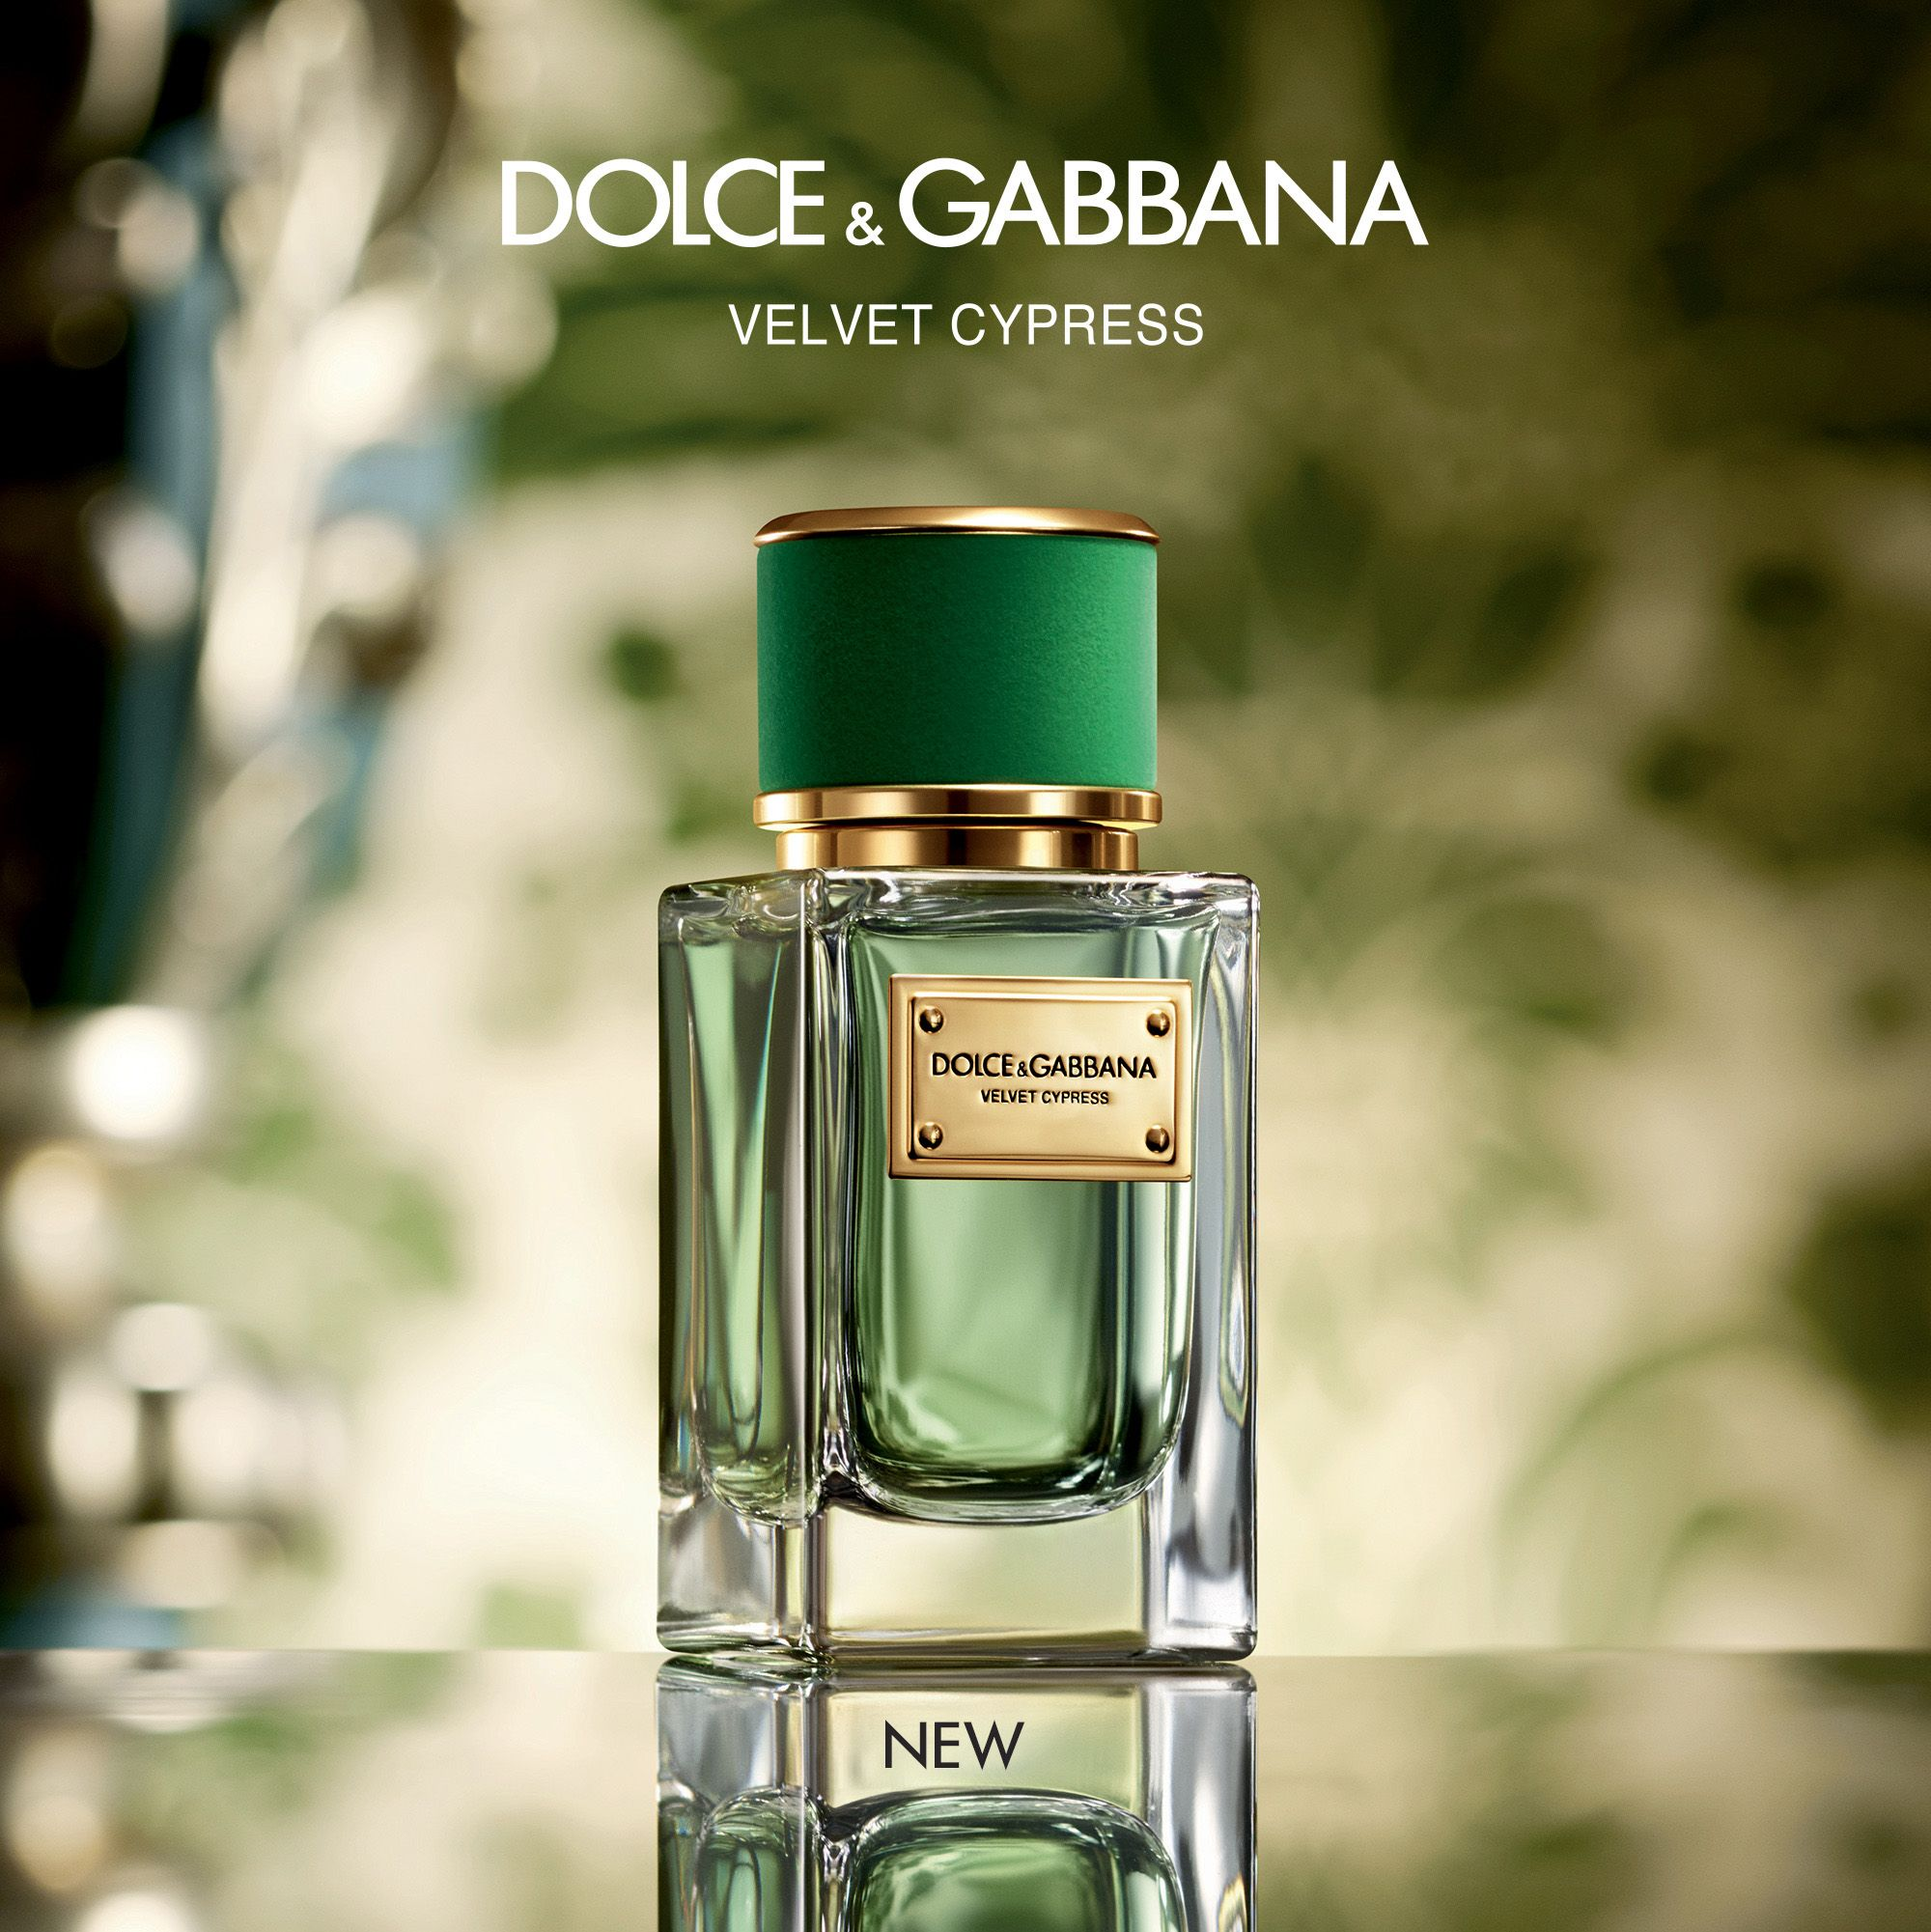 Velvet Cypress Is An Elegant Fresh Woody Citrus Fragrance Inspired